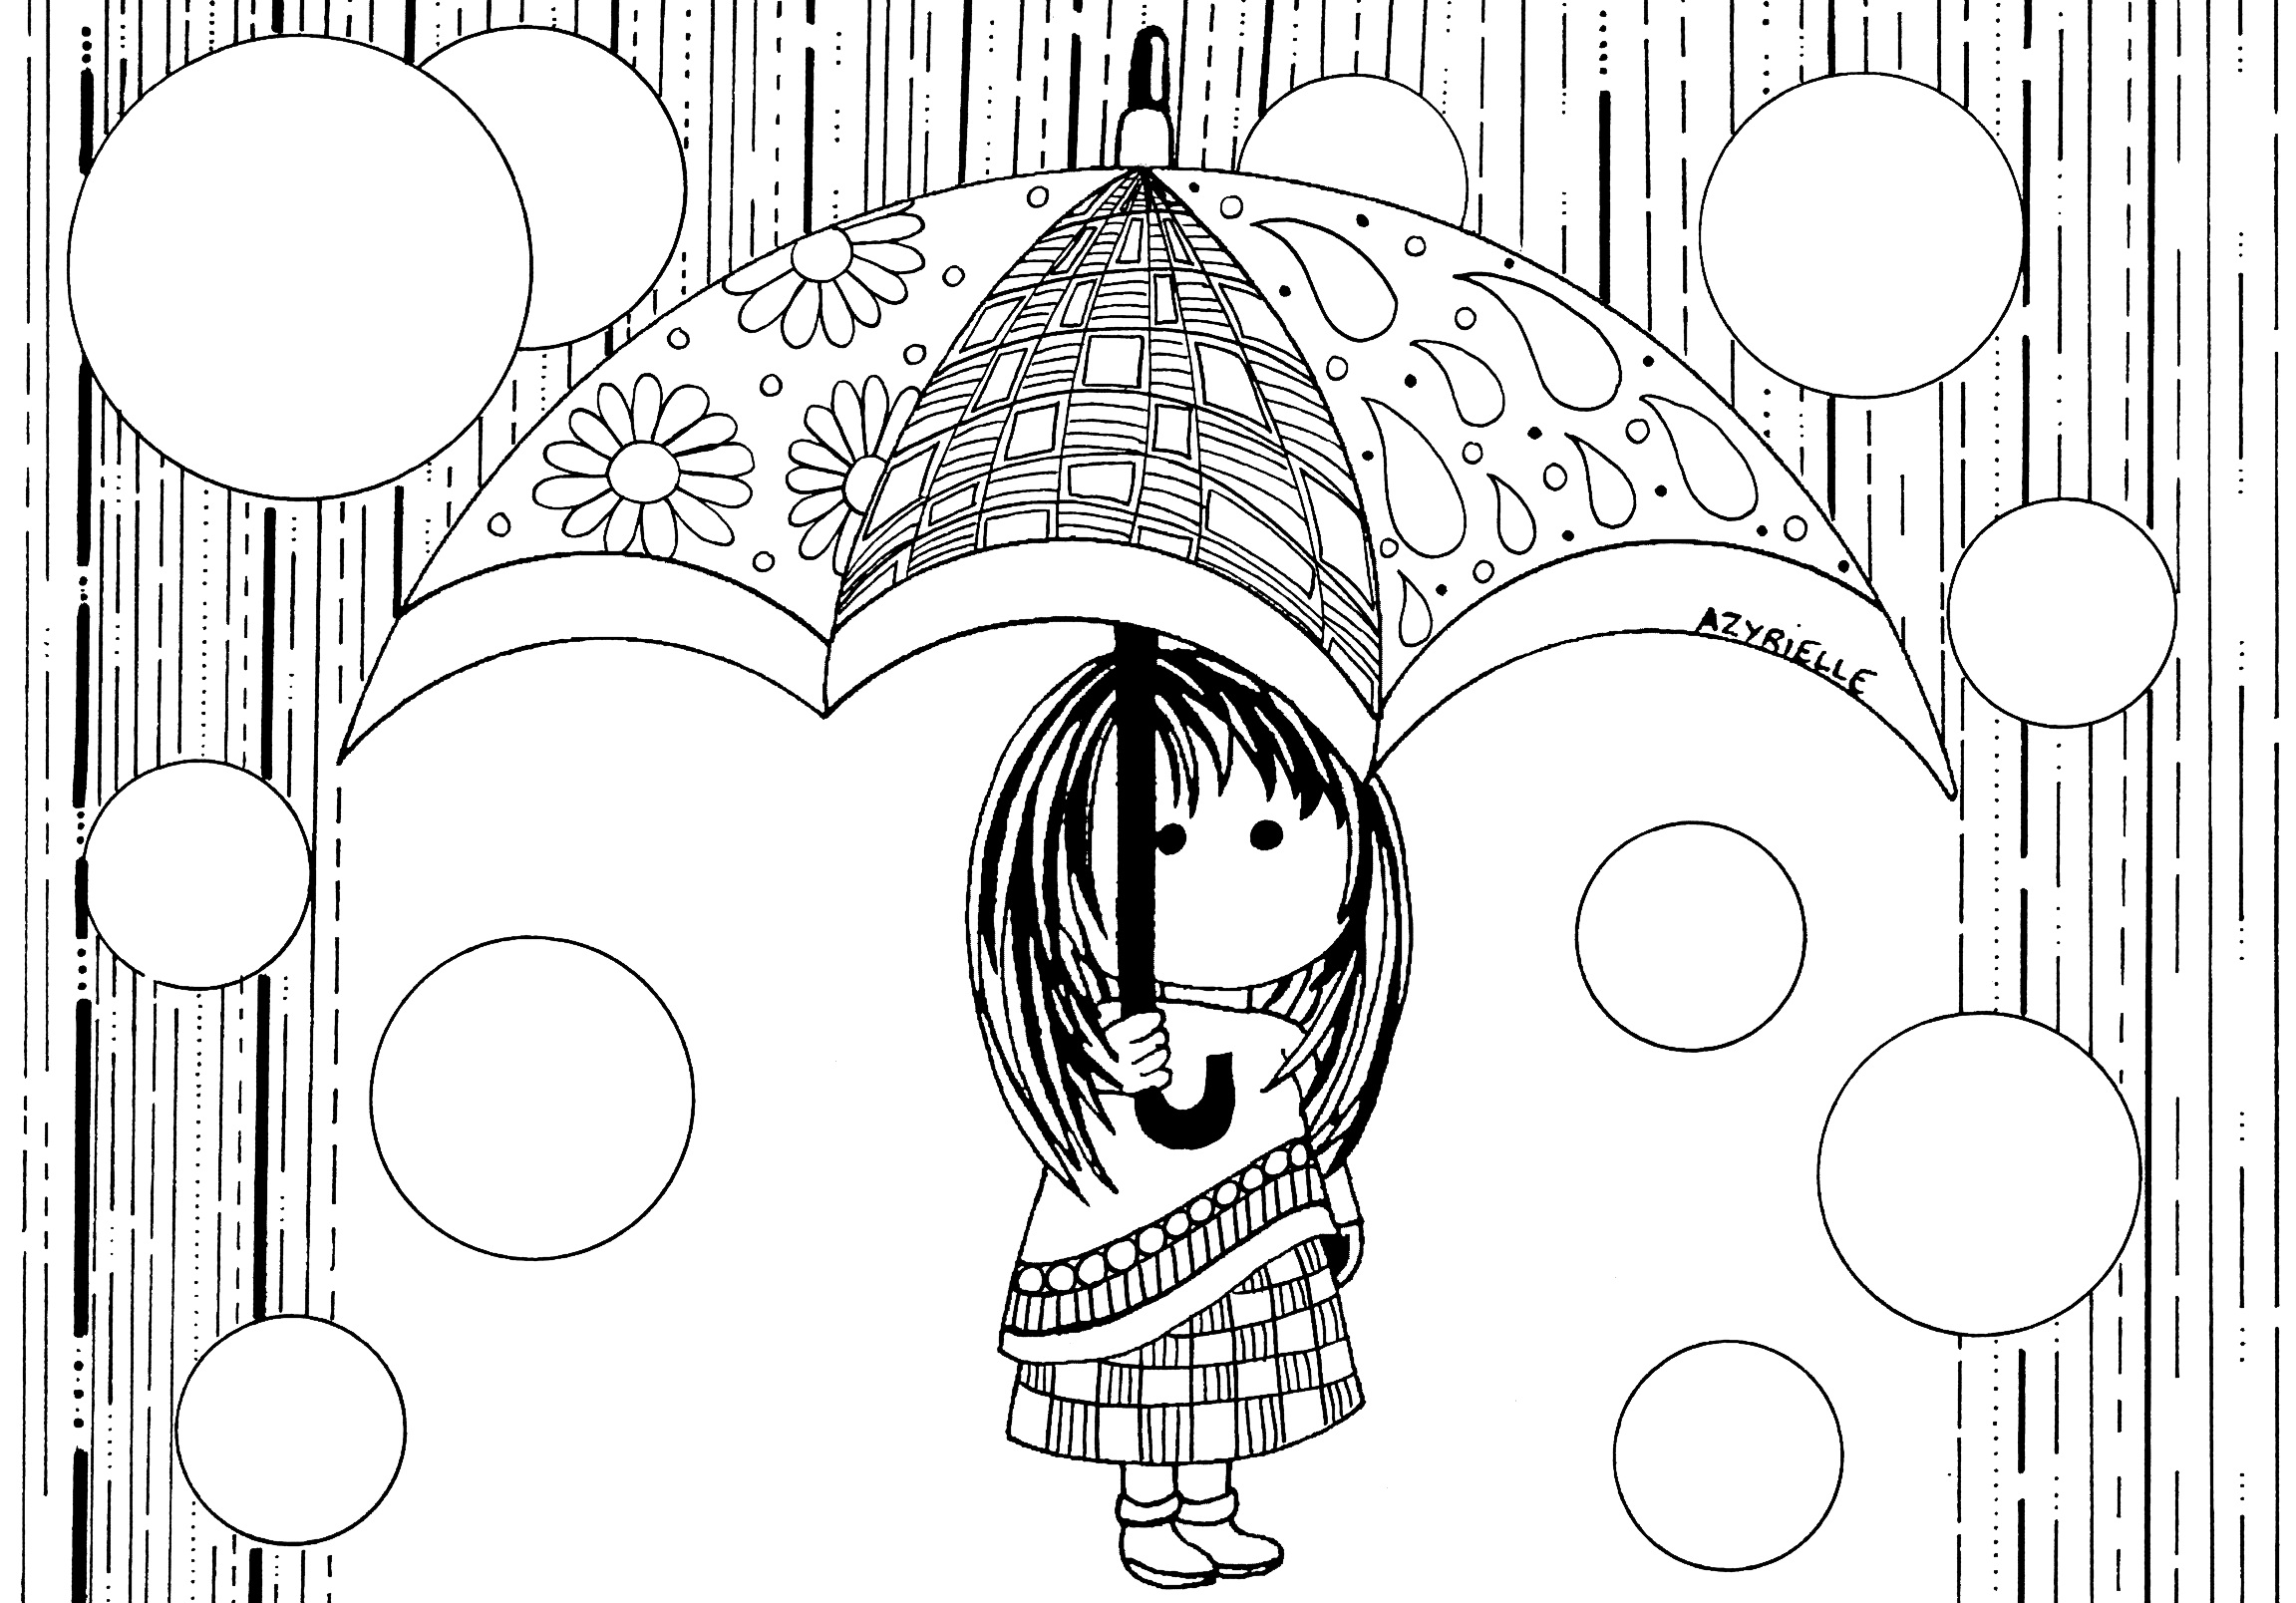 Rain by azyrielle Return to childhood Coloring pages for